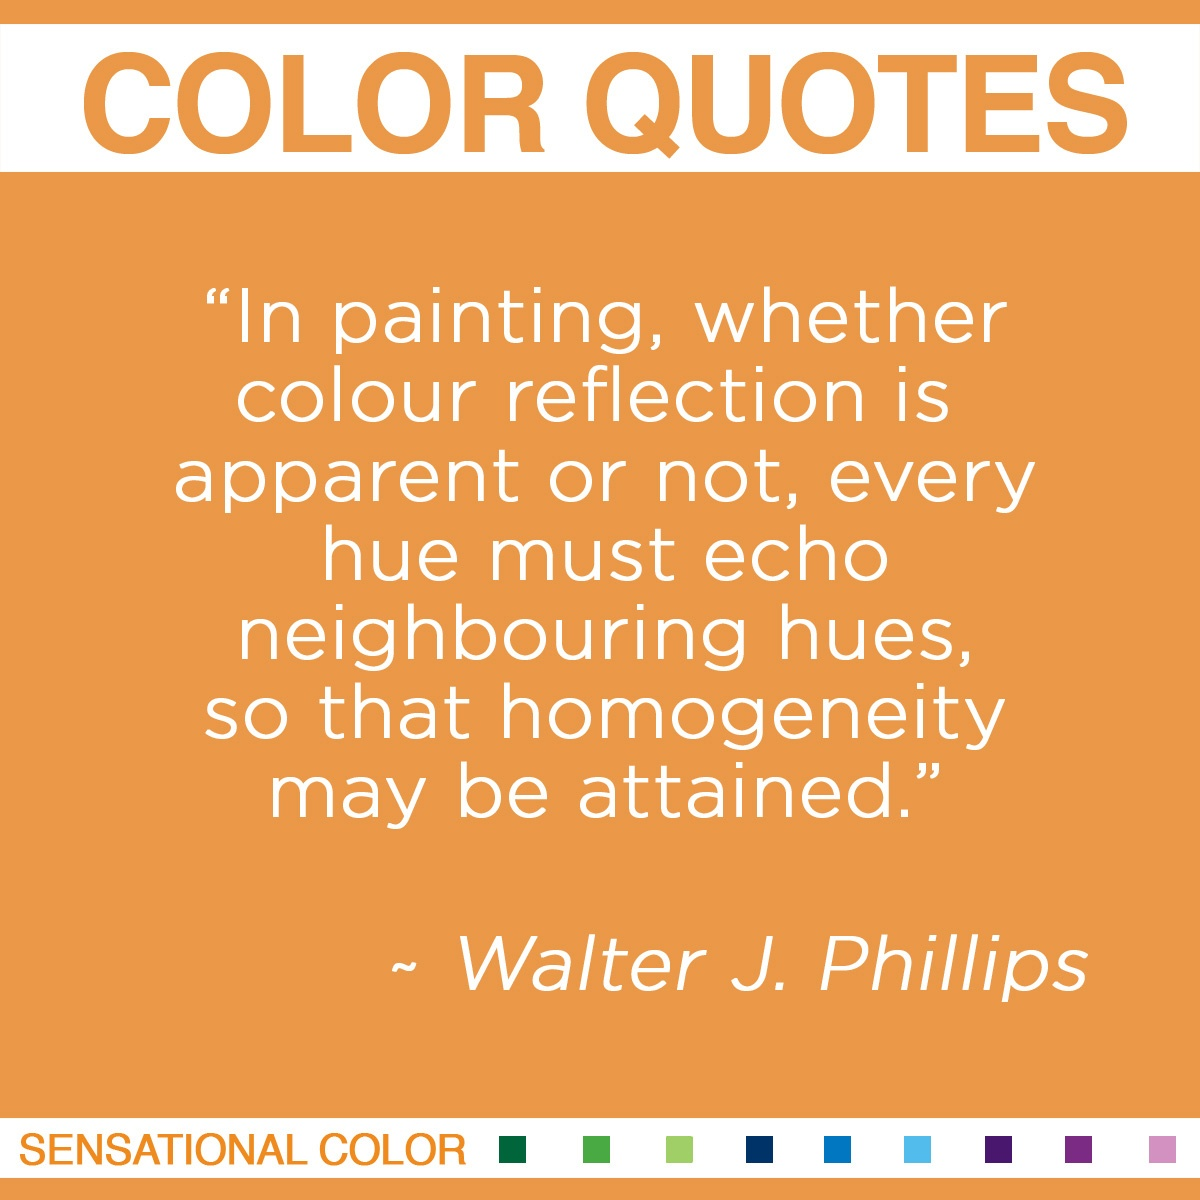 """In painting, whether colour reflection is apparent or not, every hue must echo neighbouring hues, so that homogeneity may be attained."" - Walter J. Phillips"